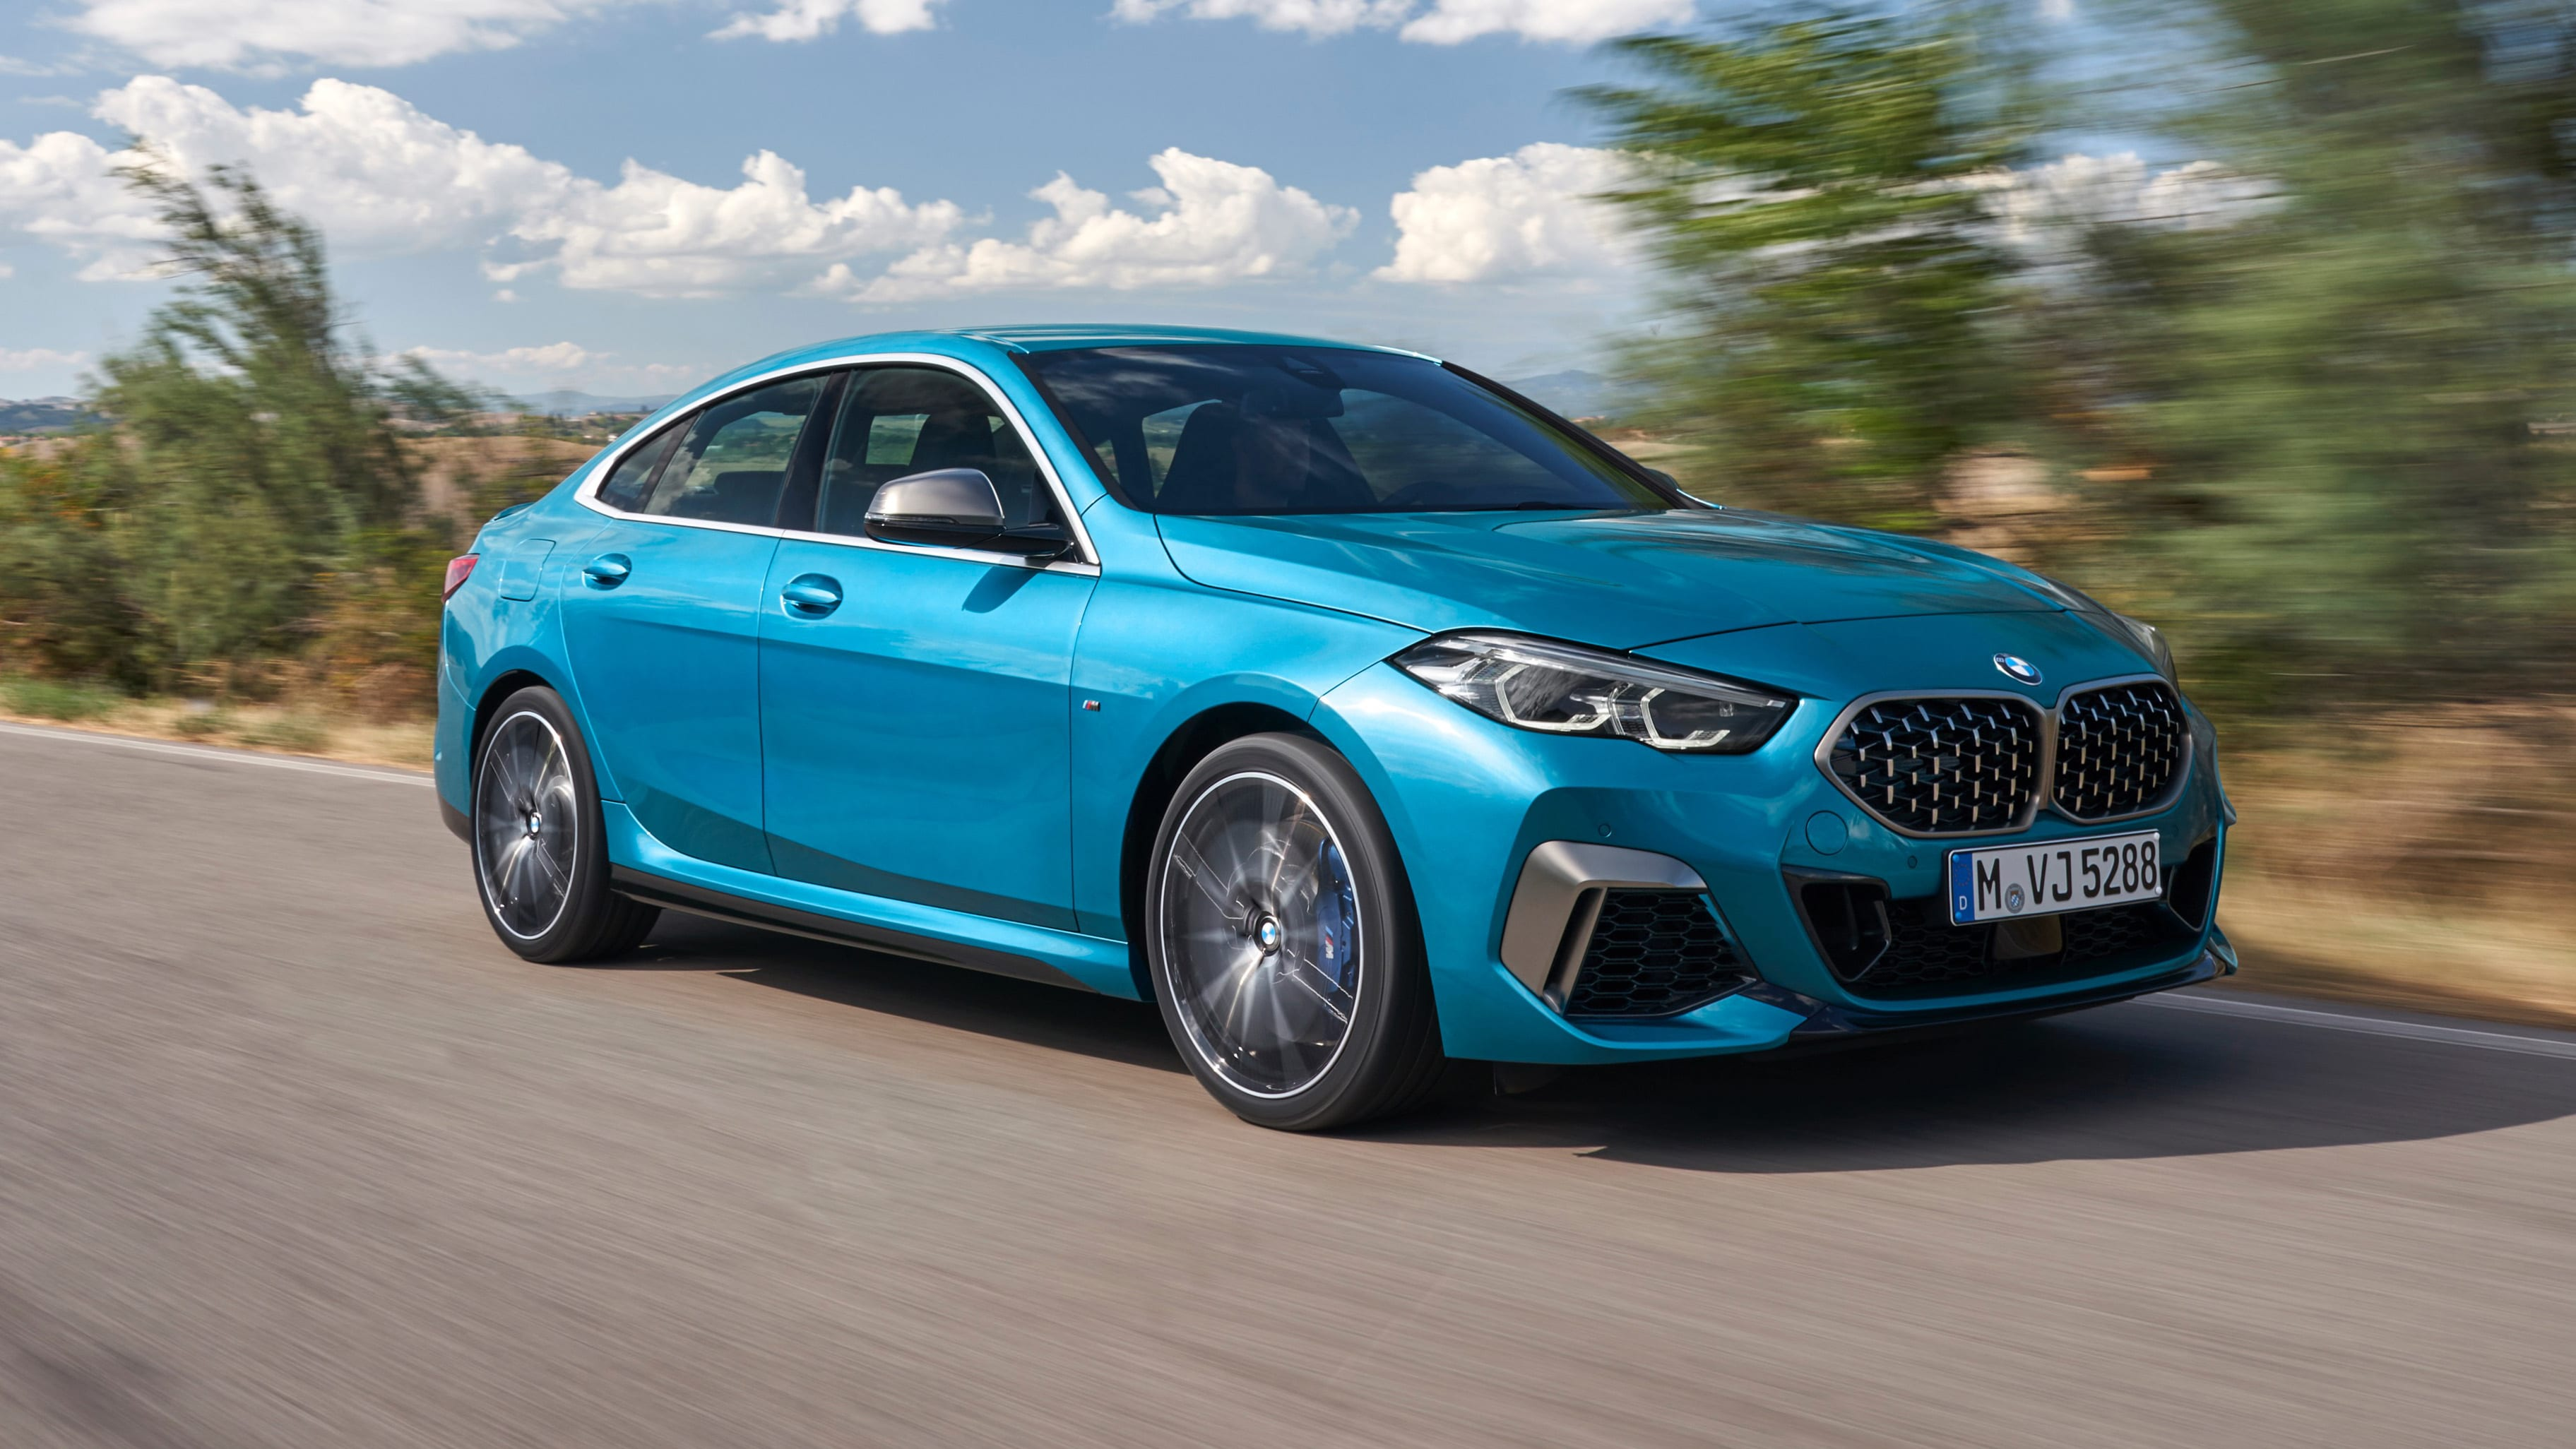 2020 Bmw 2 Series Gran Coupe Price Australia